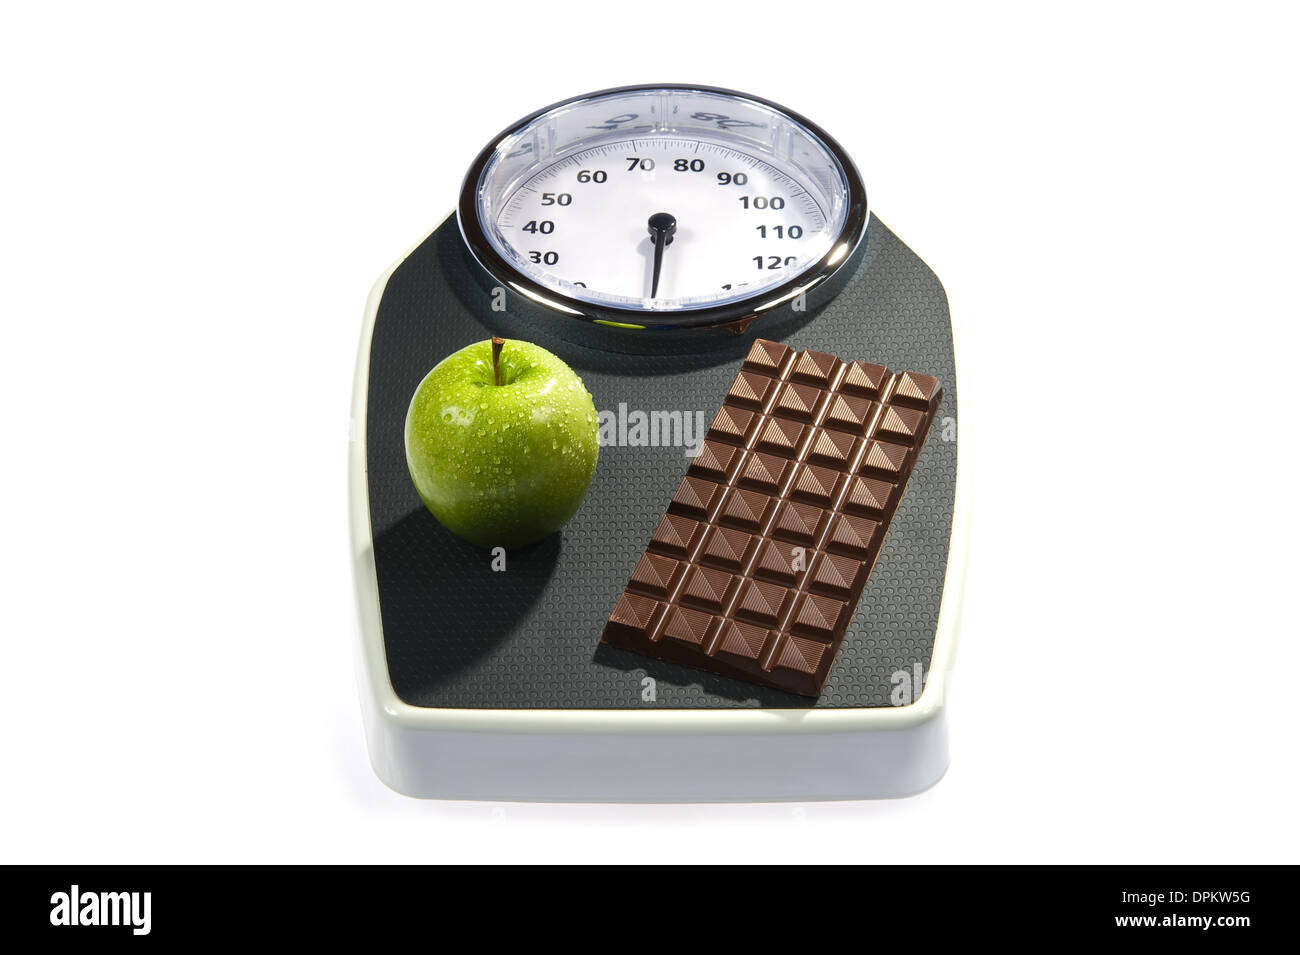 A weight scale with chocolate and an apple - Stock Image